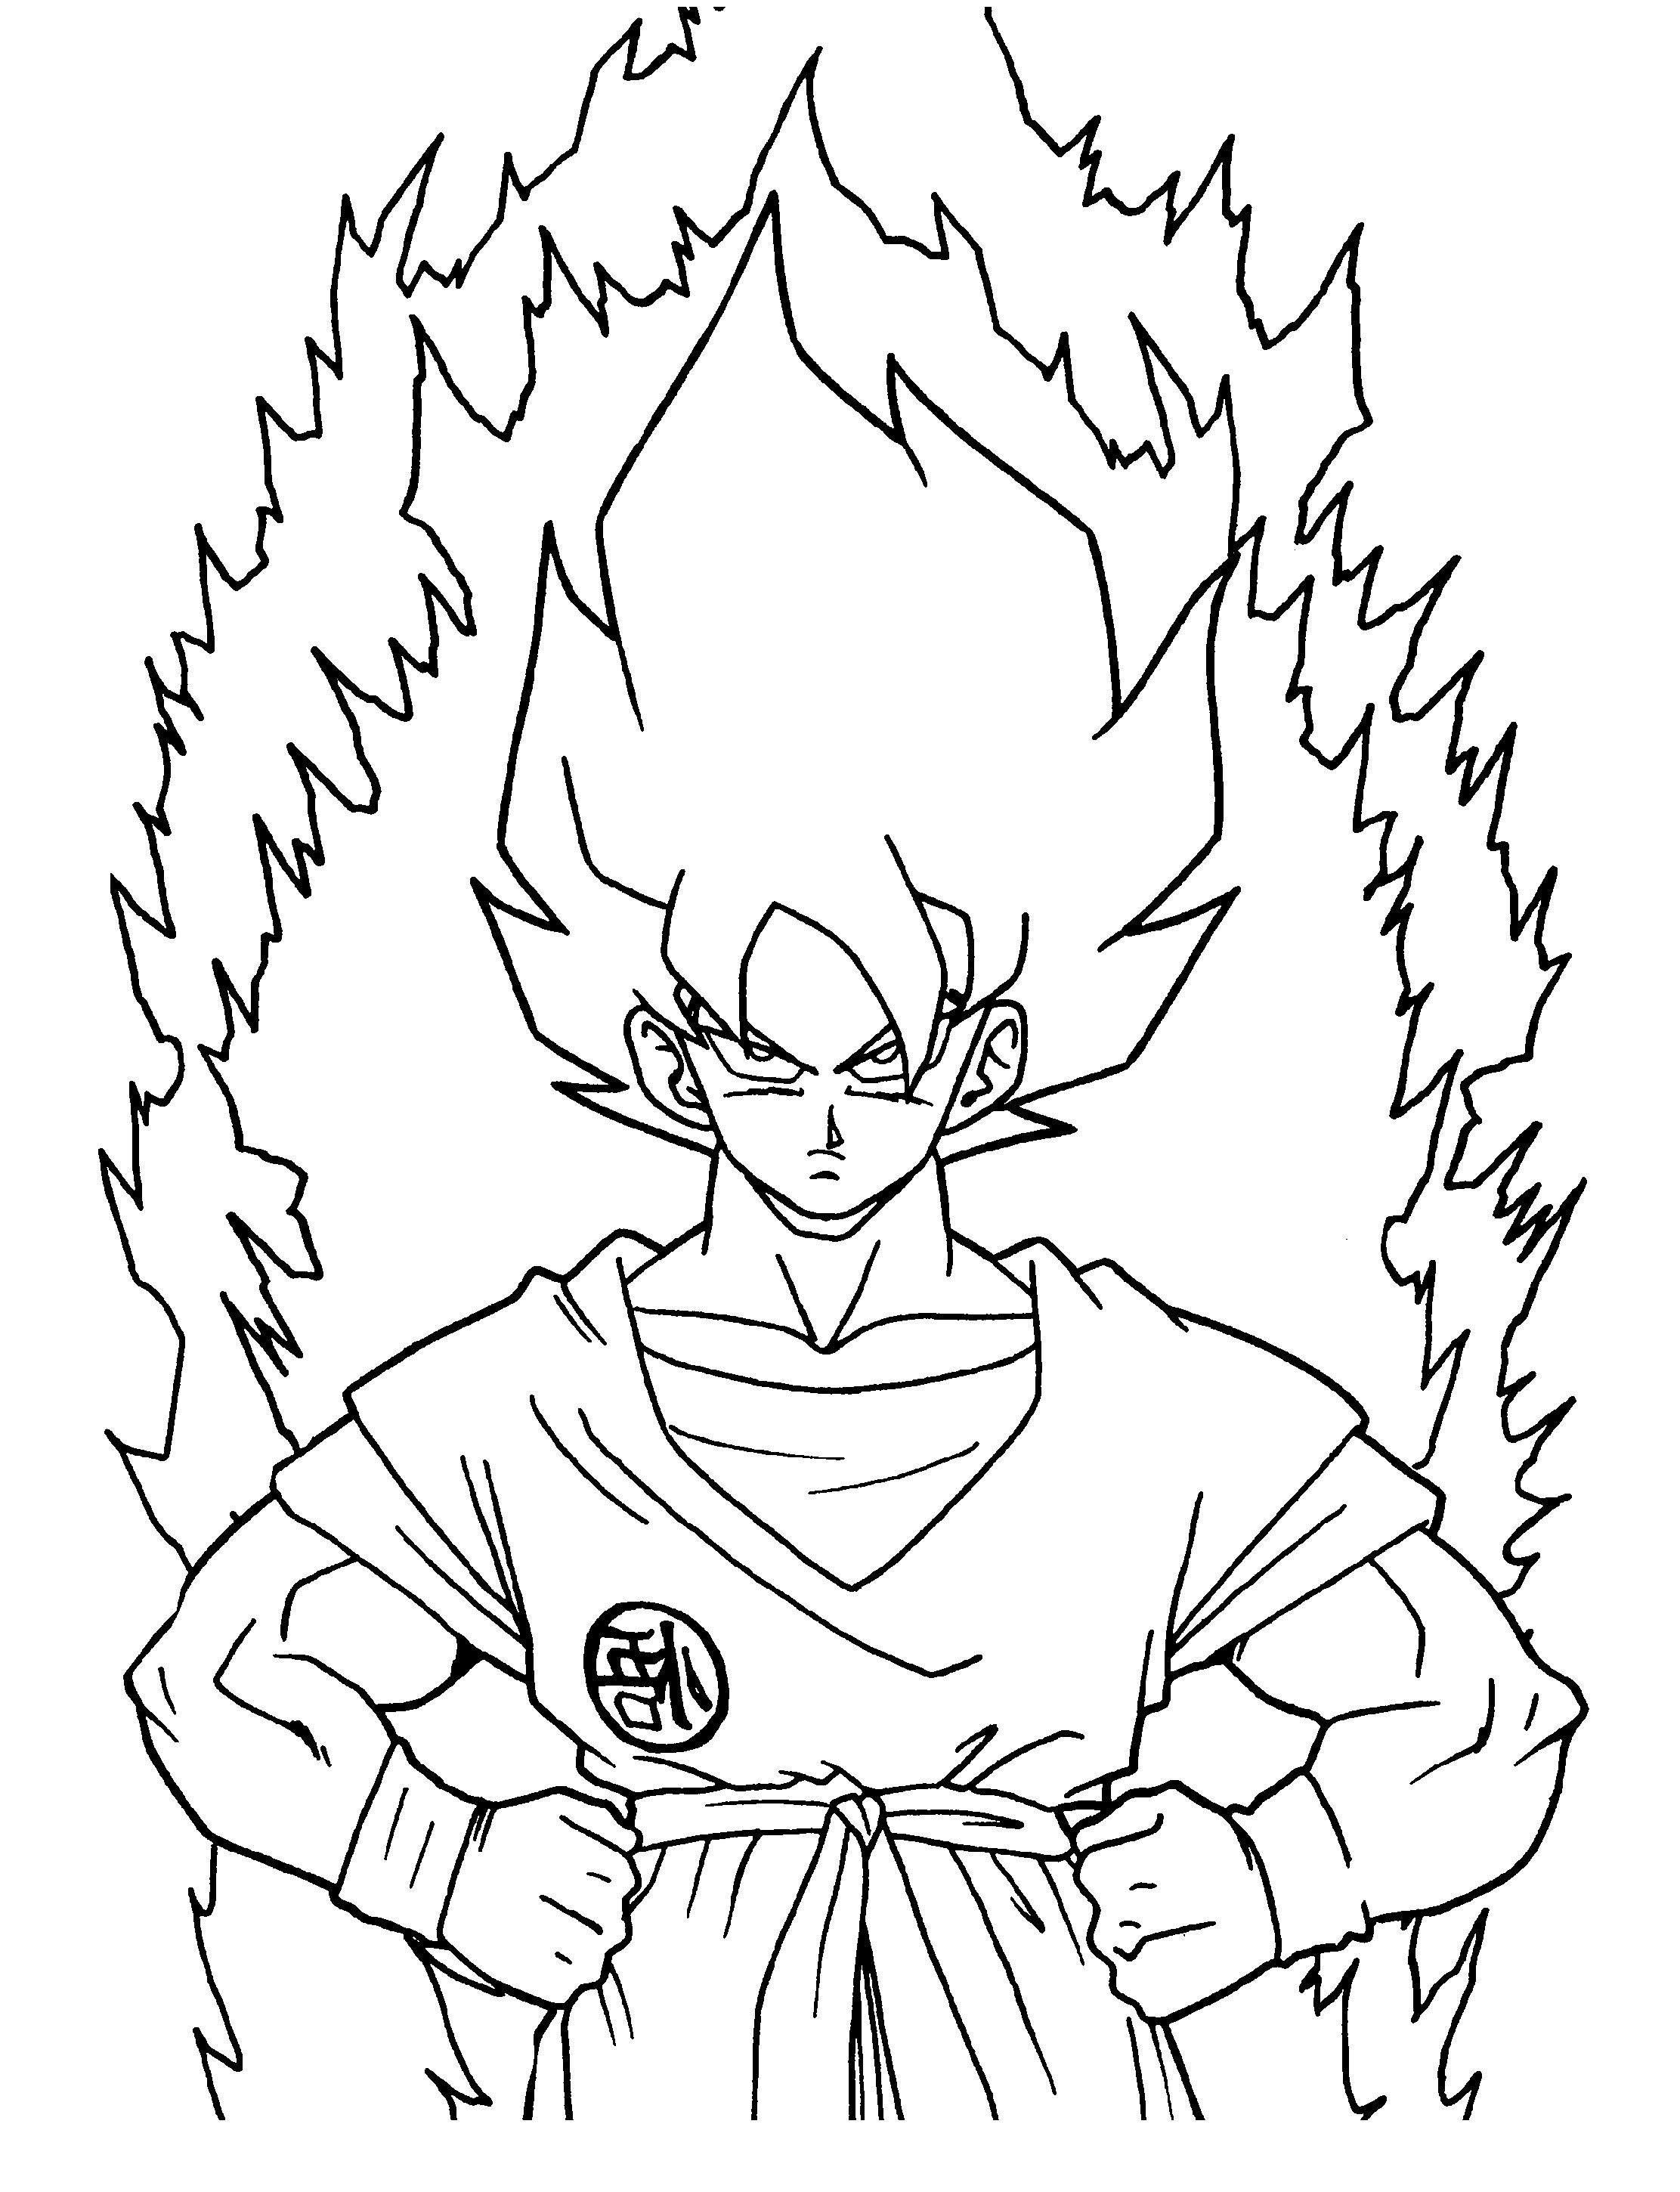 Dragon Ball Z Coloring Sheets K5 Worksheets Dragon Coloring Page Cartoon Coloring Pages Coloring Pages